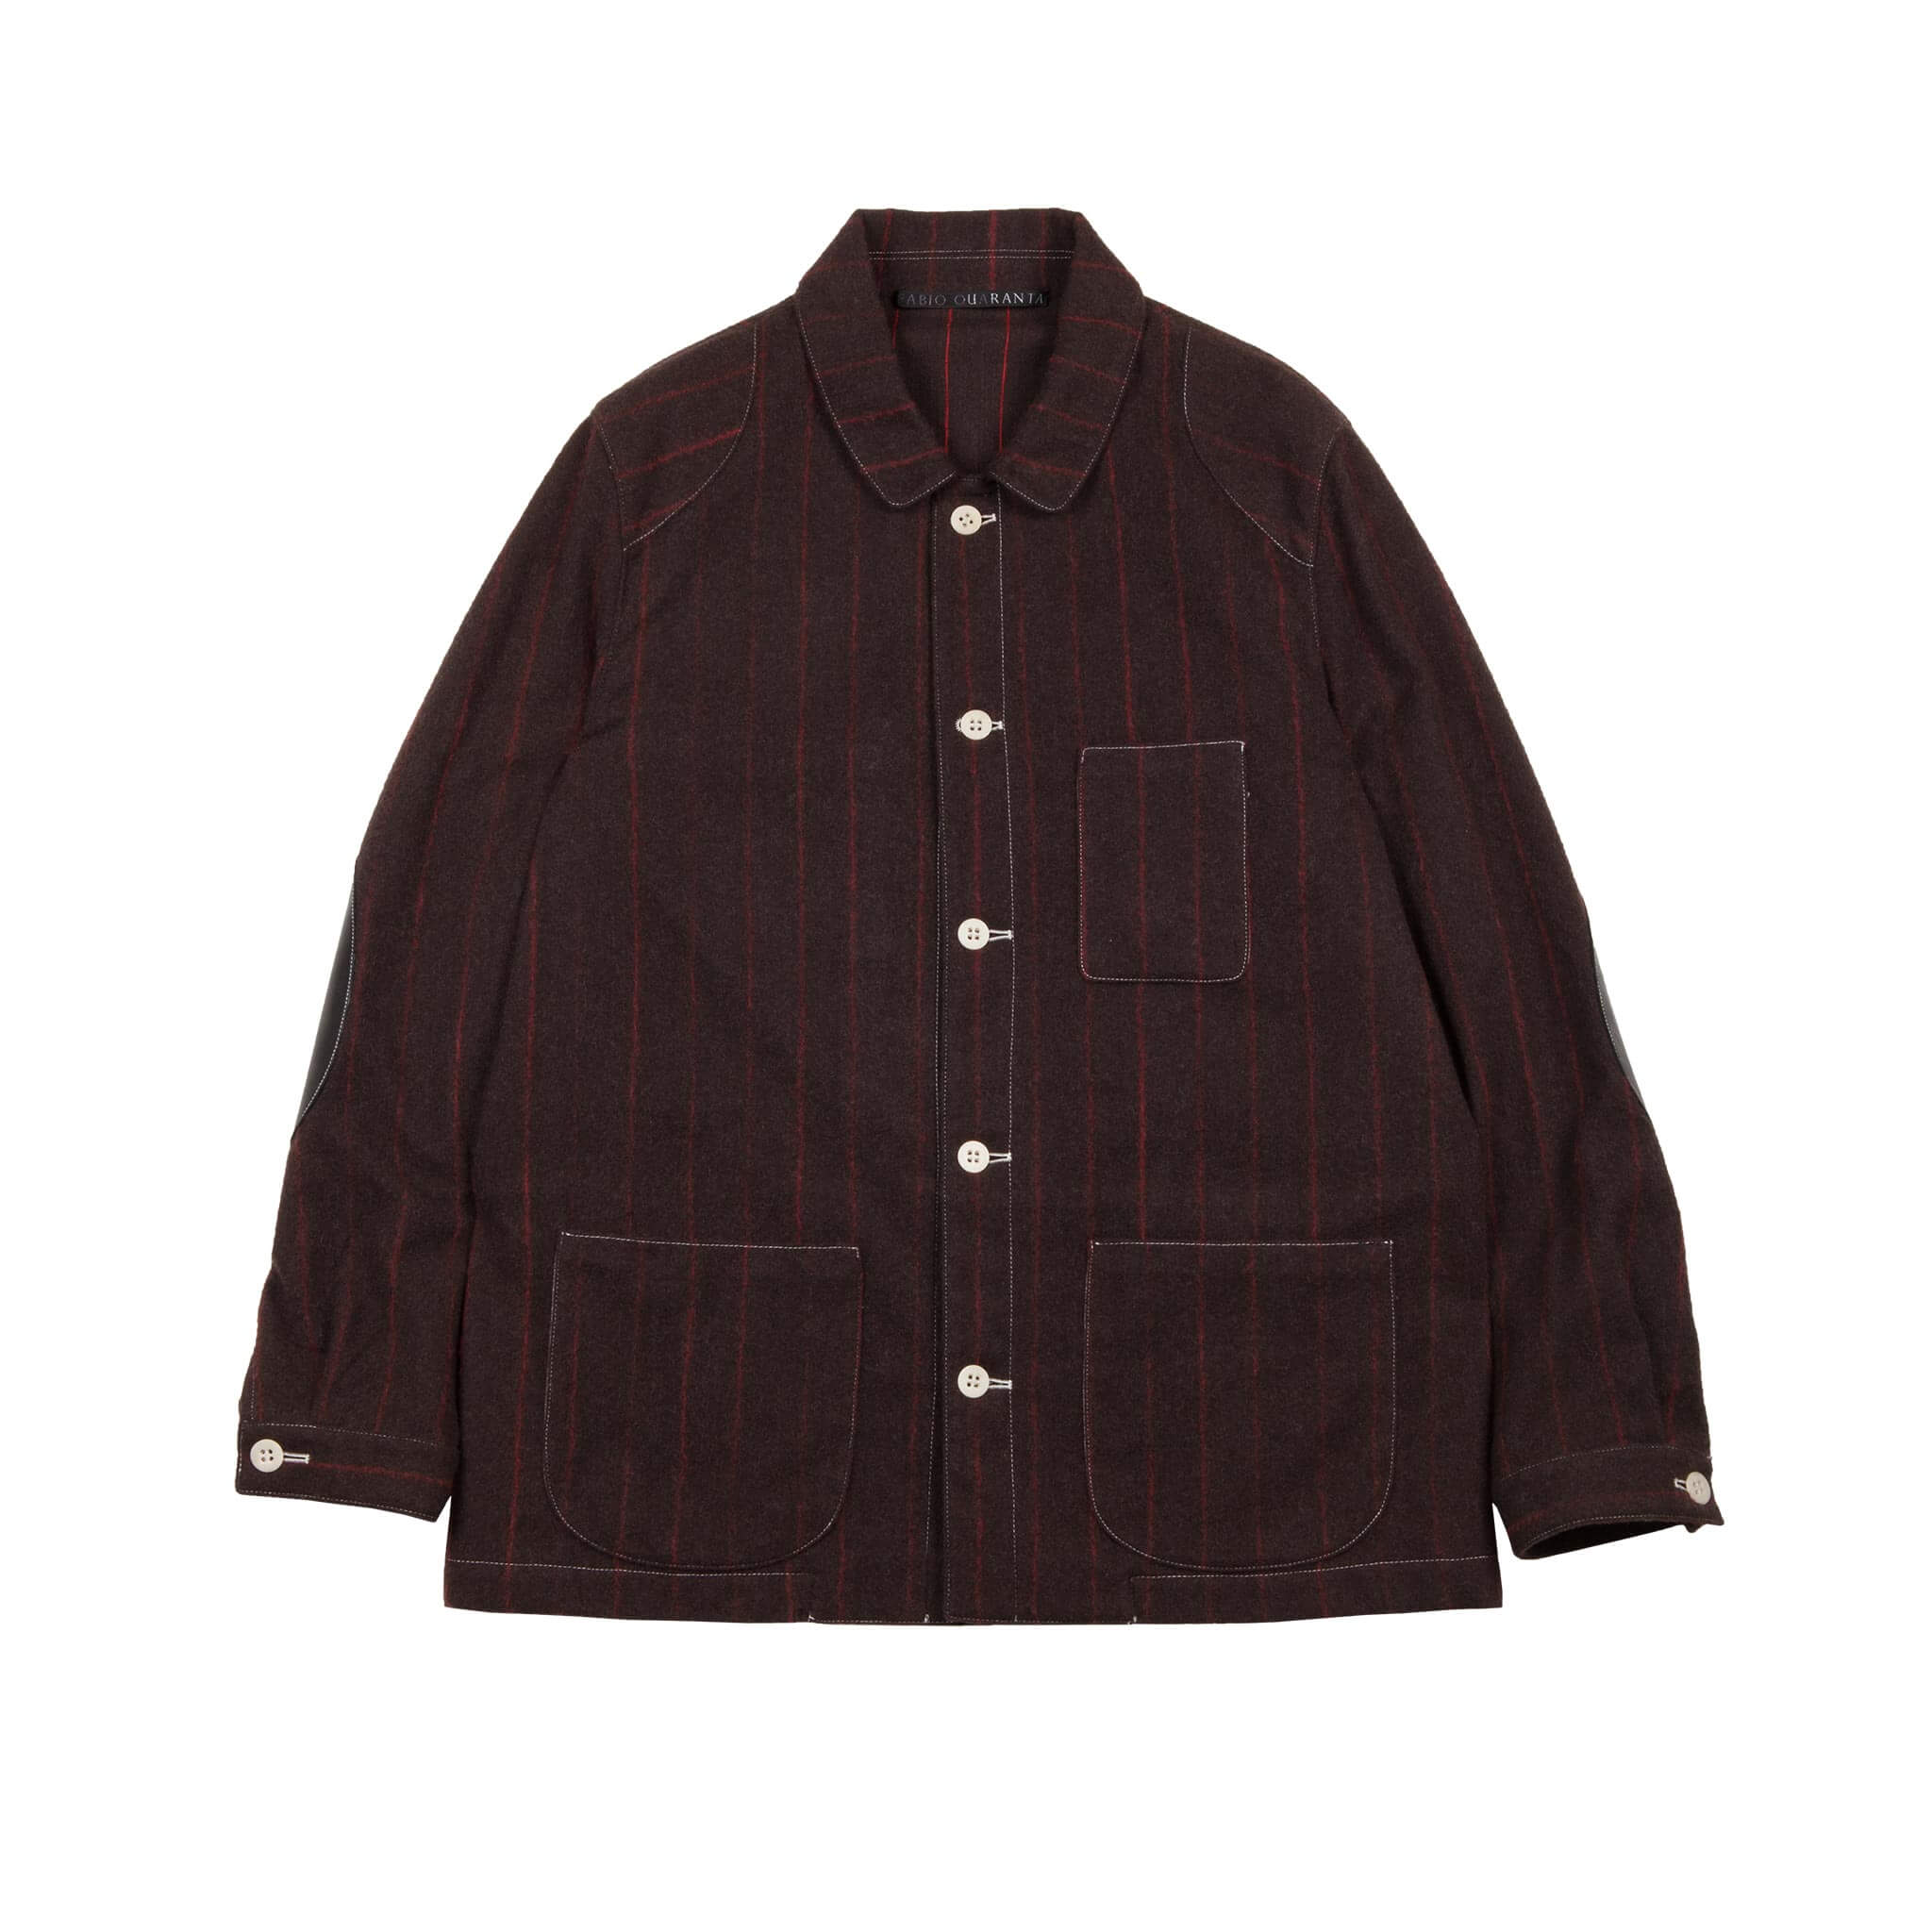 BROWN WOOL AND CASHMERE PINSTRIPE WORKER JACKET 1 OF 1